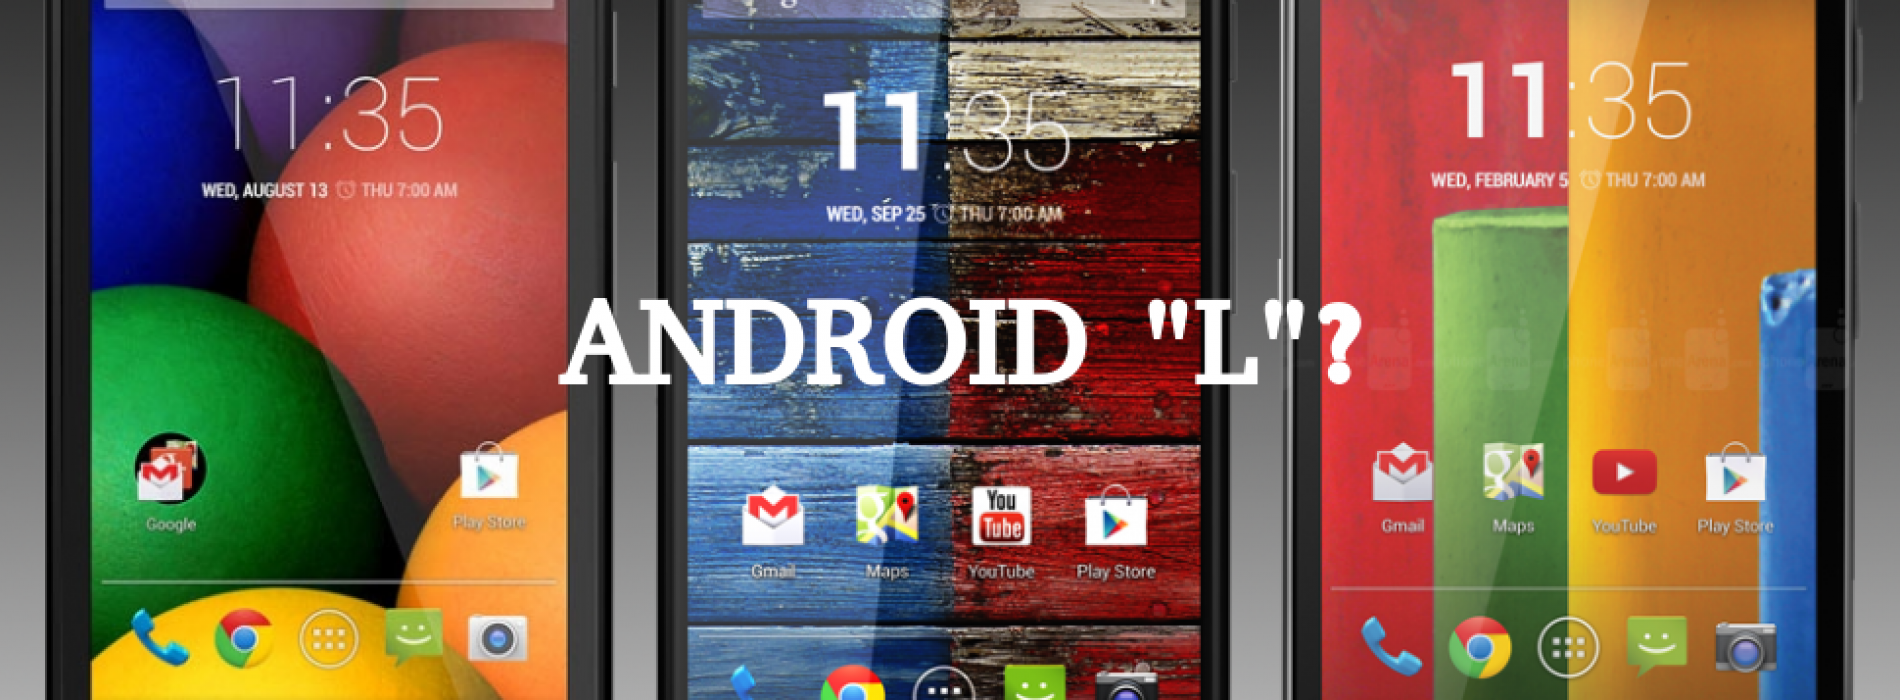 "Moto X and G will get the Android ""L"" update, according to customer support at least"